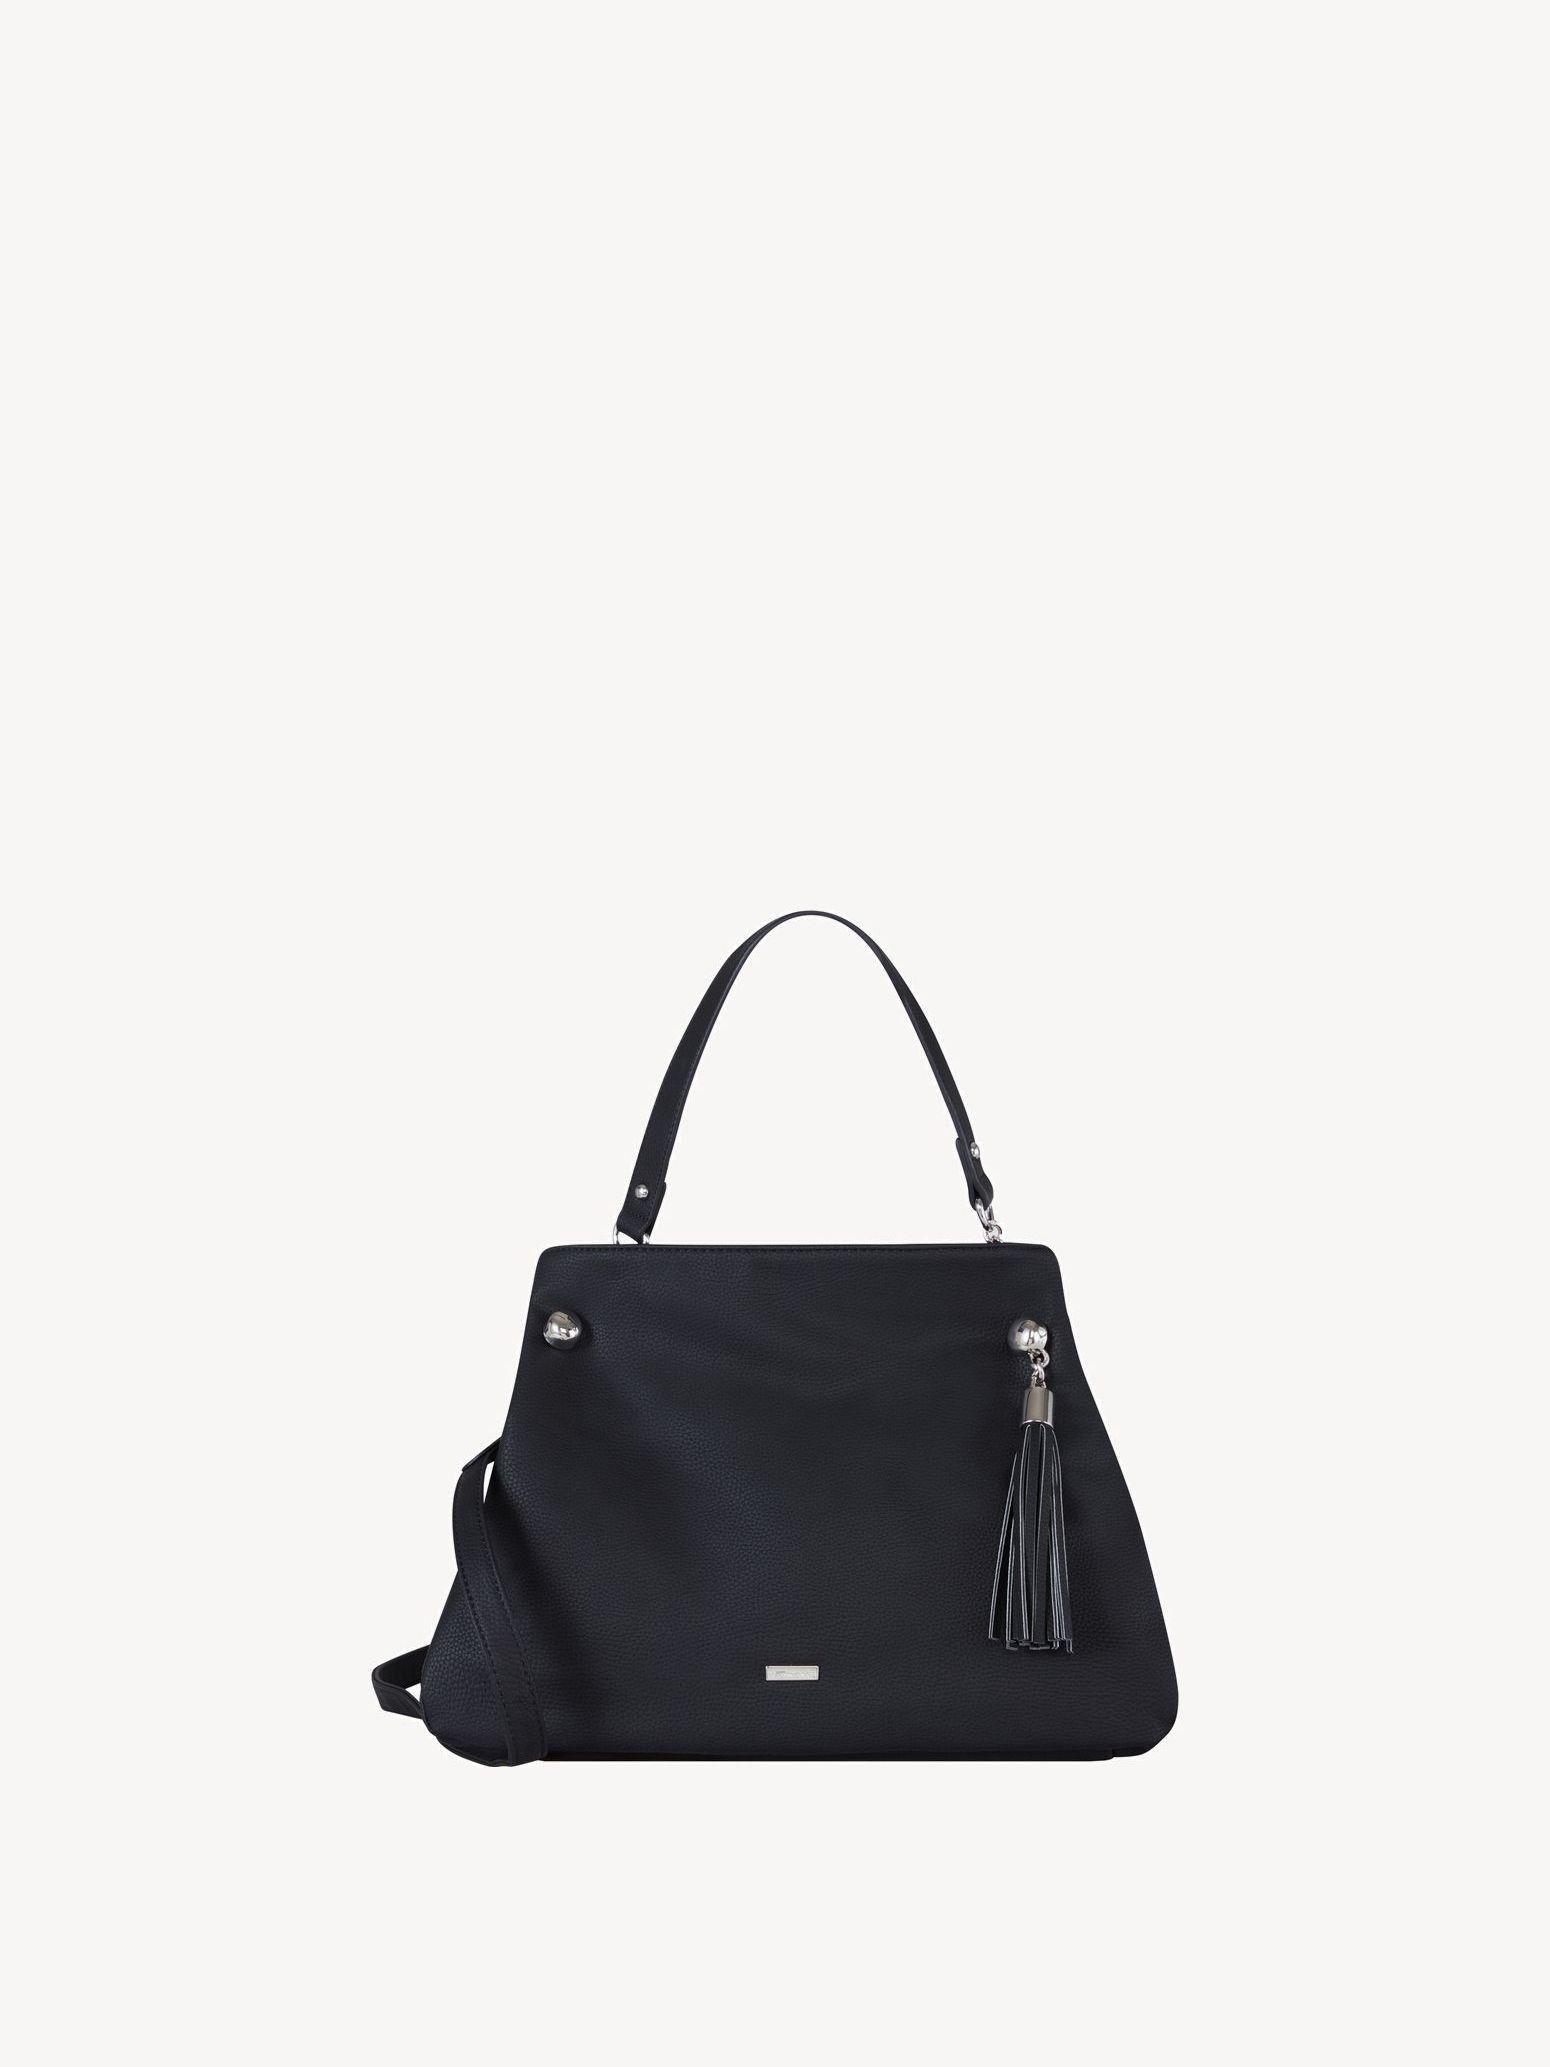 Handbag - black, black, hi-res